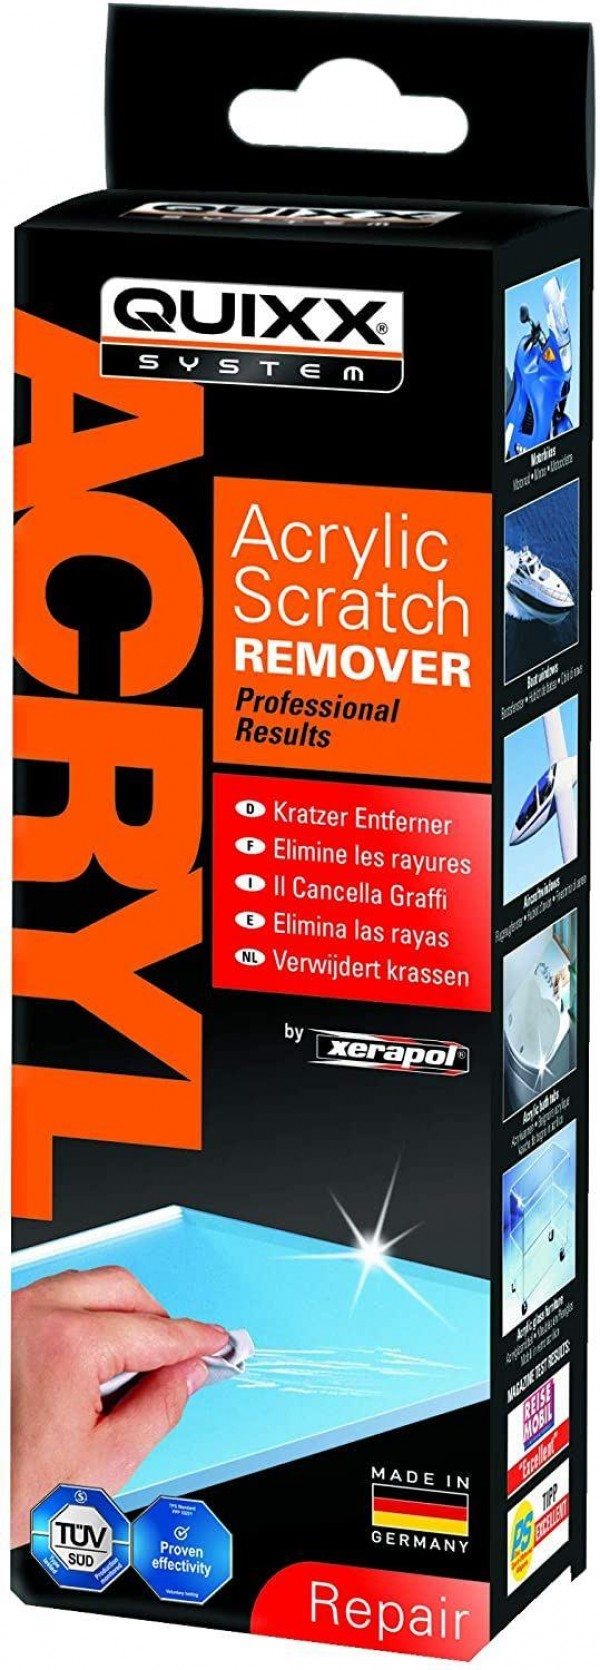 Quixx Acrylic Scratch Remover for Professional Repair Results